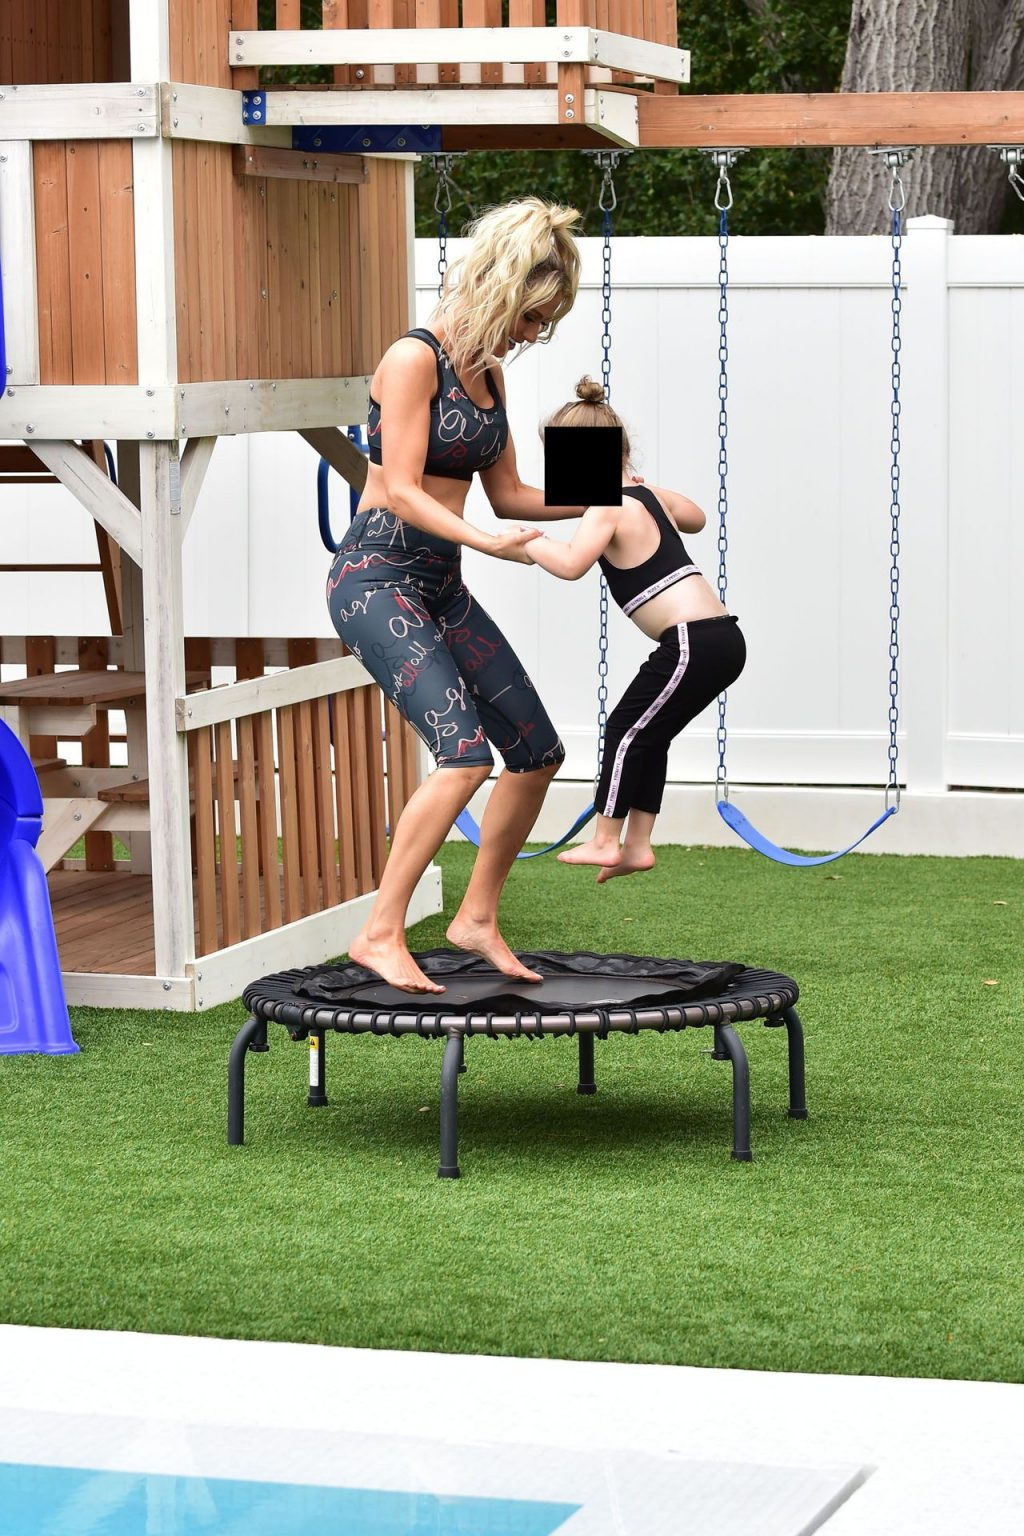 Dorit Kemsley Is Staying Fit With Her Daughter (26 Photos)